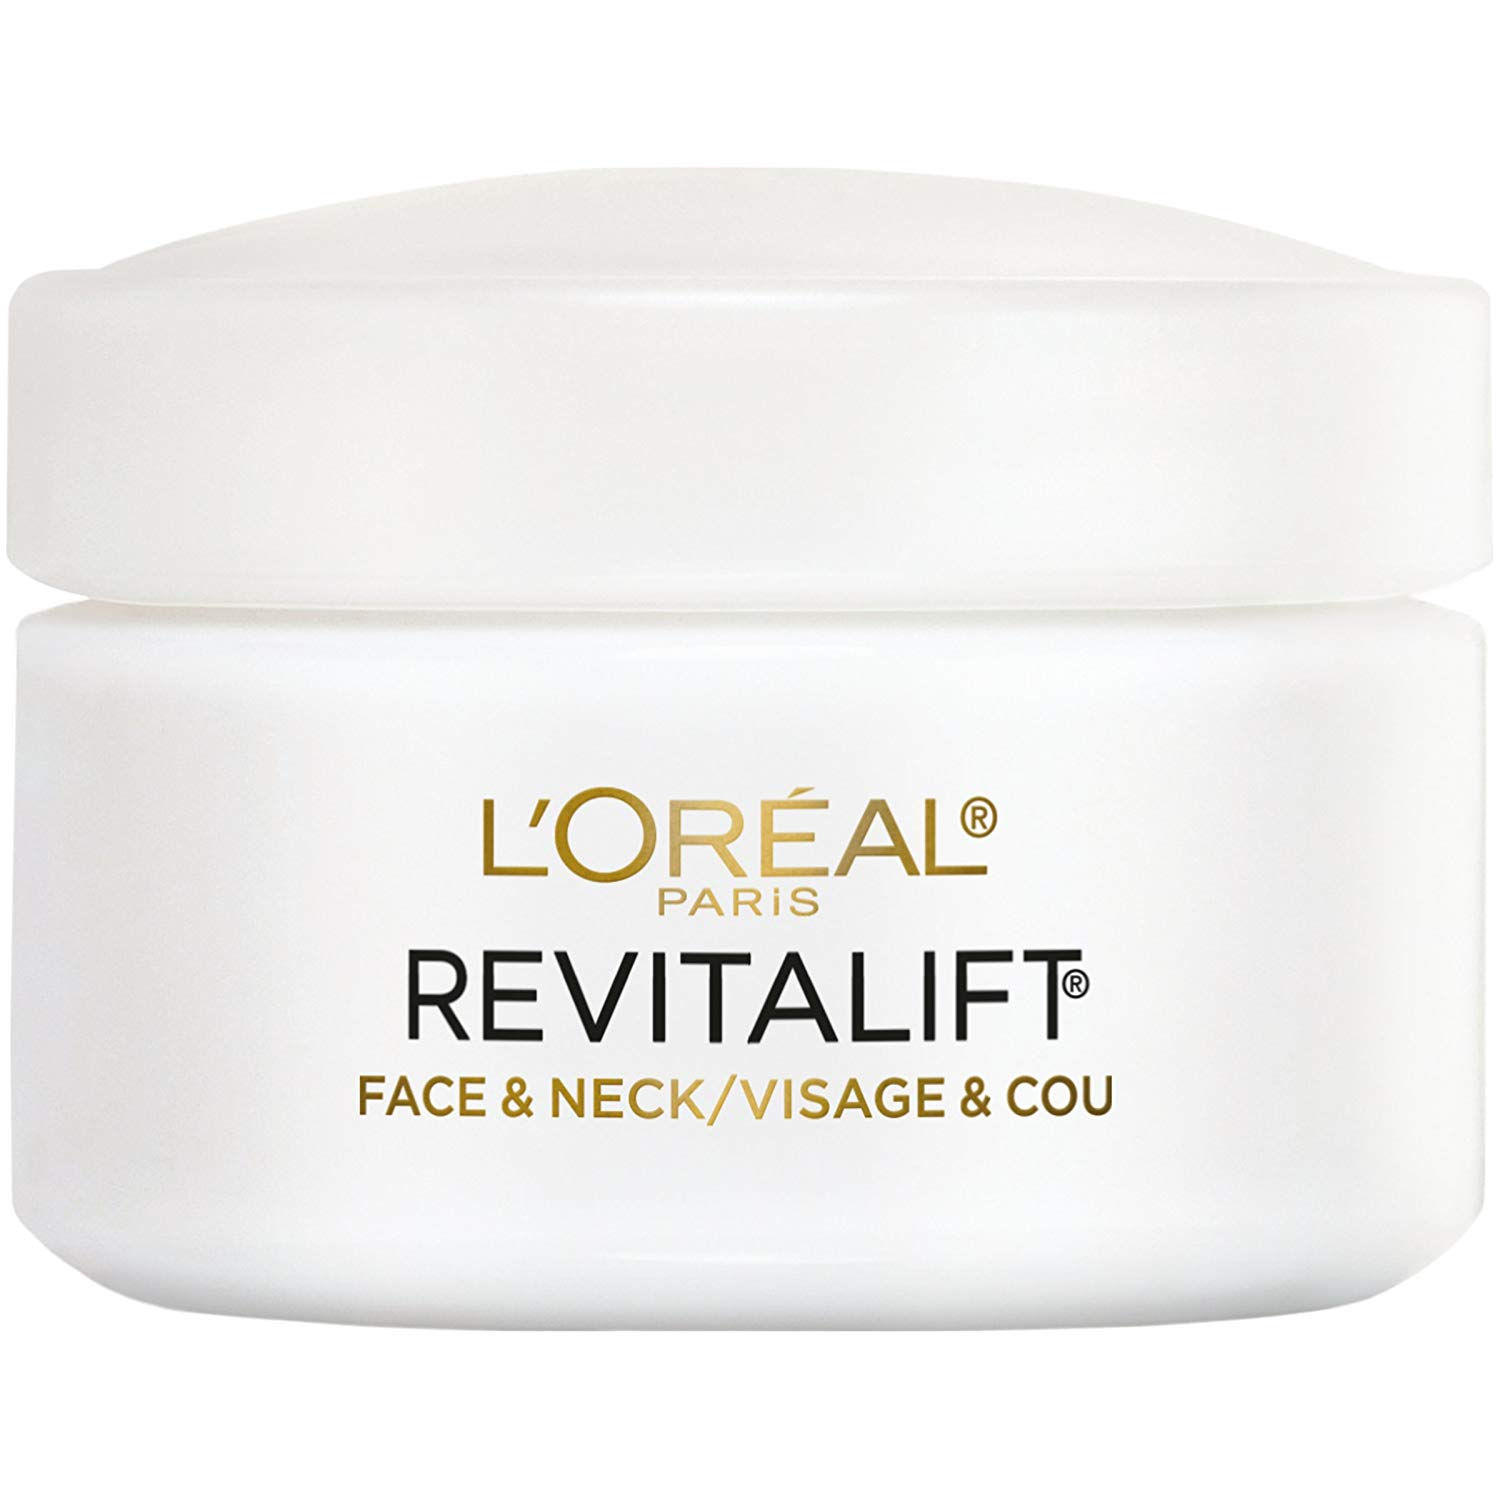 L'Oréal Paris Skincare Revitalift Anti-Wrinkle and Firming Face and Neck Moisturizer